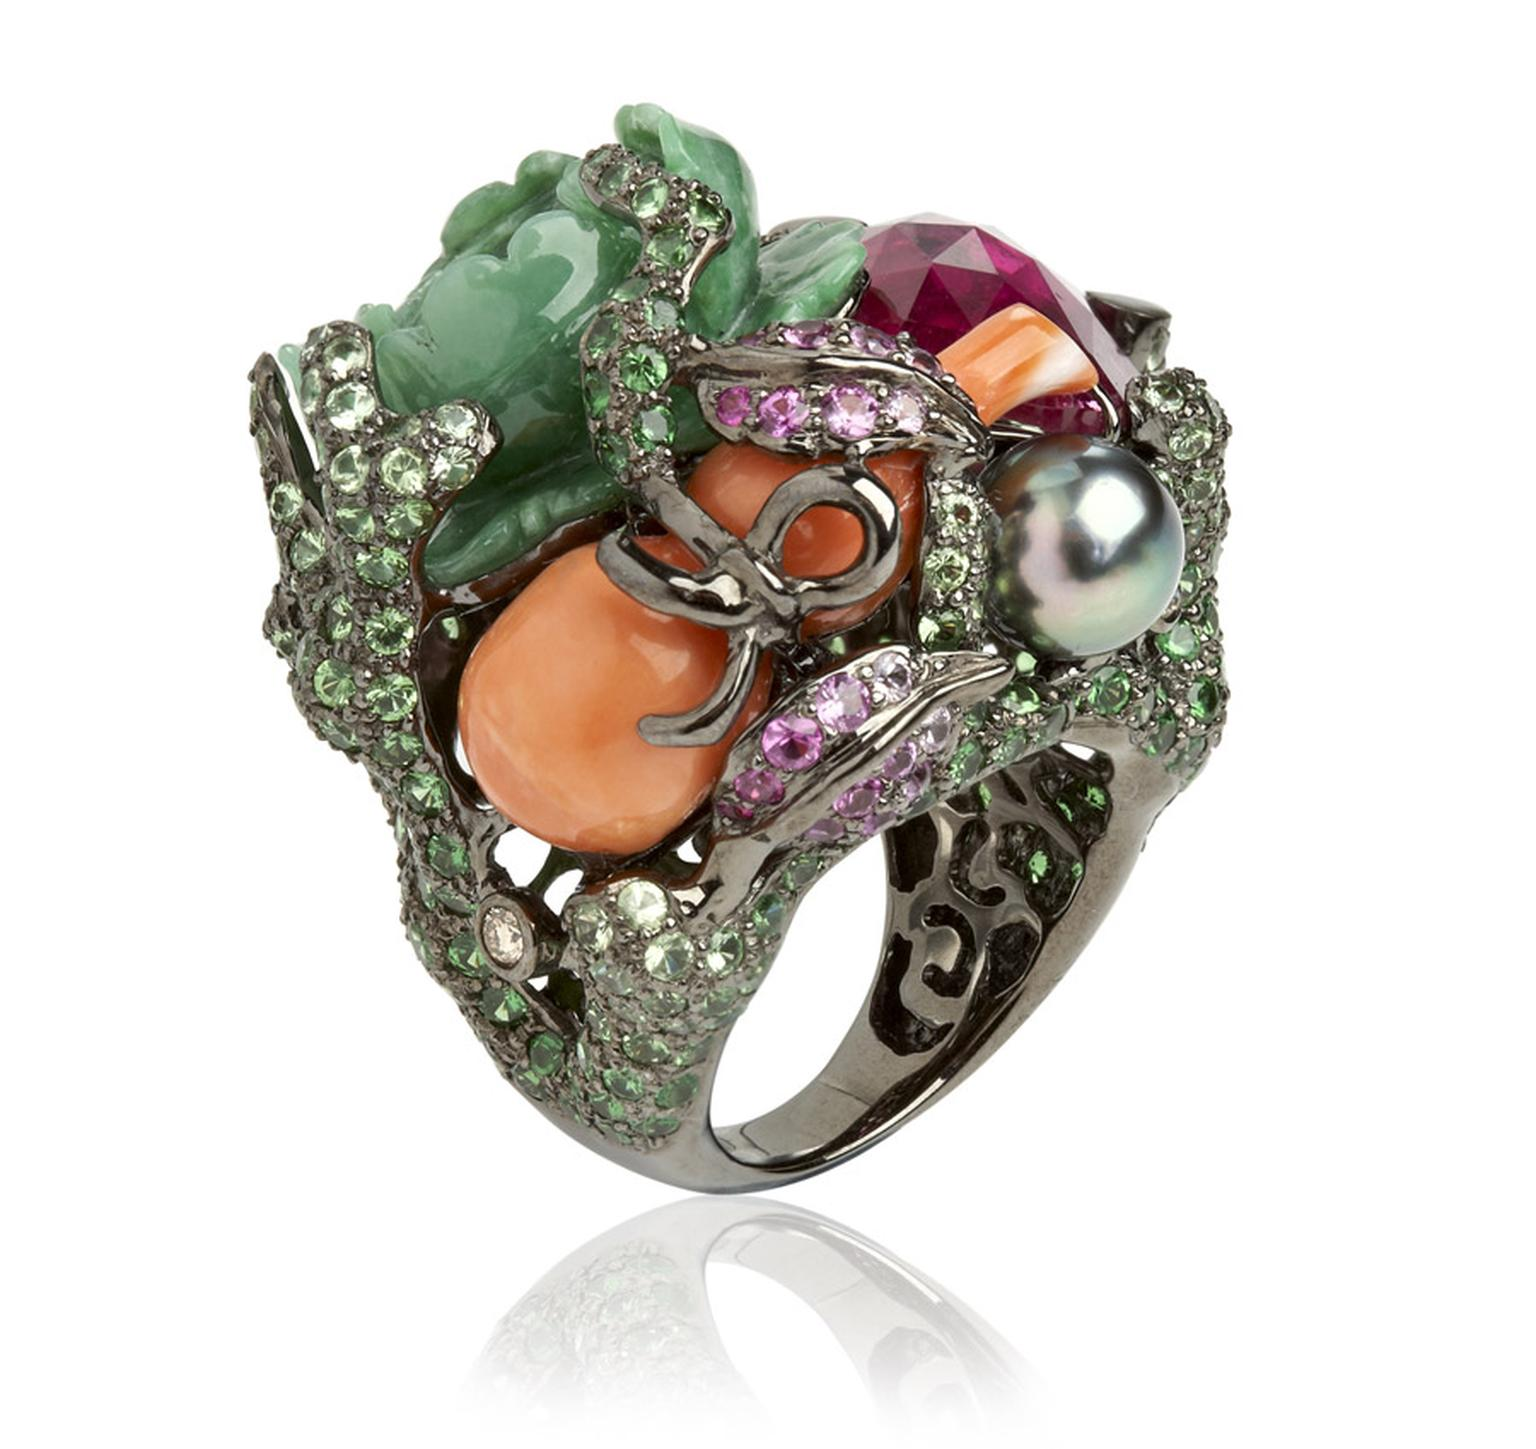 Wendy-Yue-Fantasie-18ct-white-gold--diamond-garnet-sapphire-pearl-coral-and-jade-Jugle-Jumble-ring-By-Wendy--Yue-for-Annoushka-.jpg